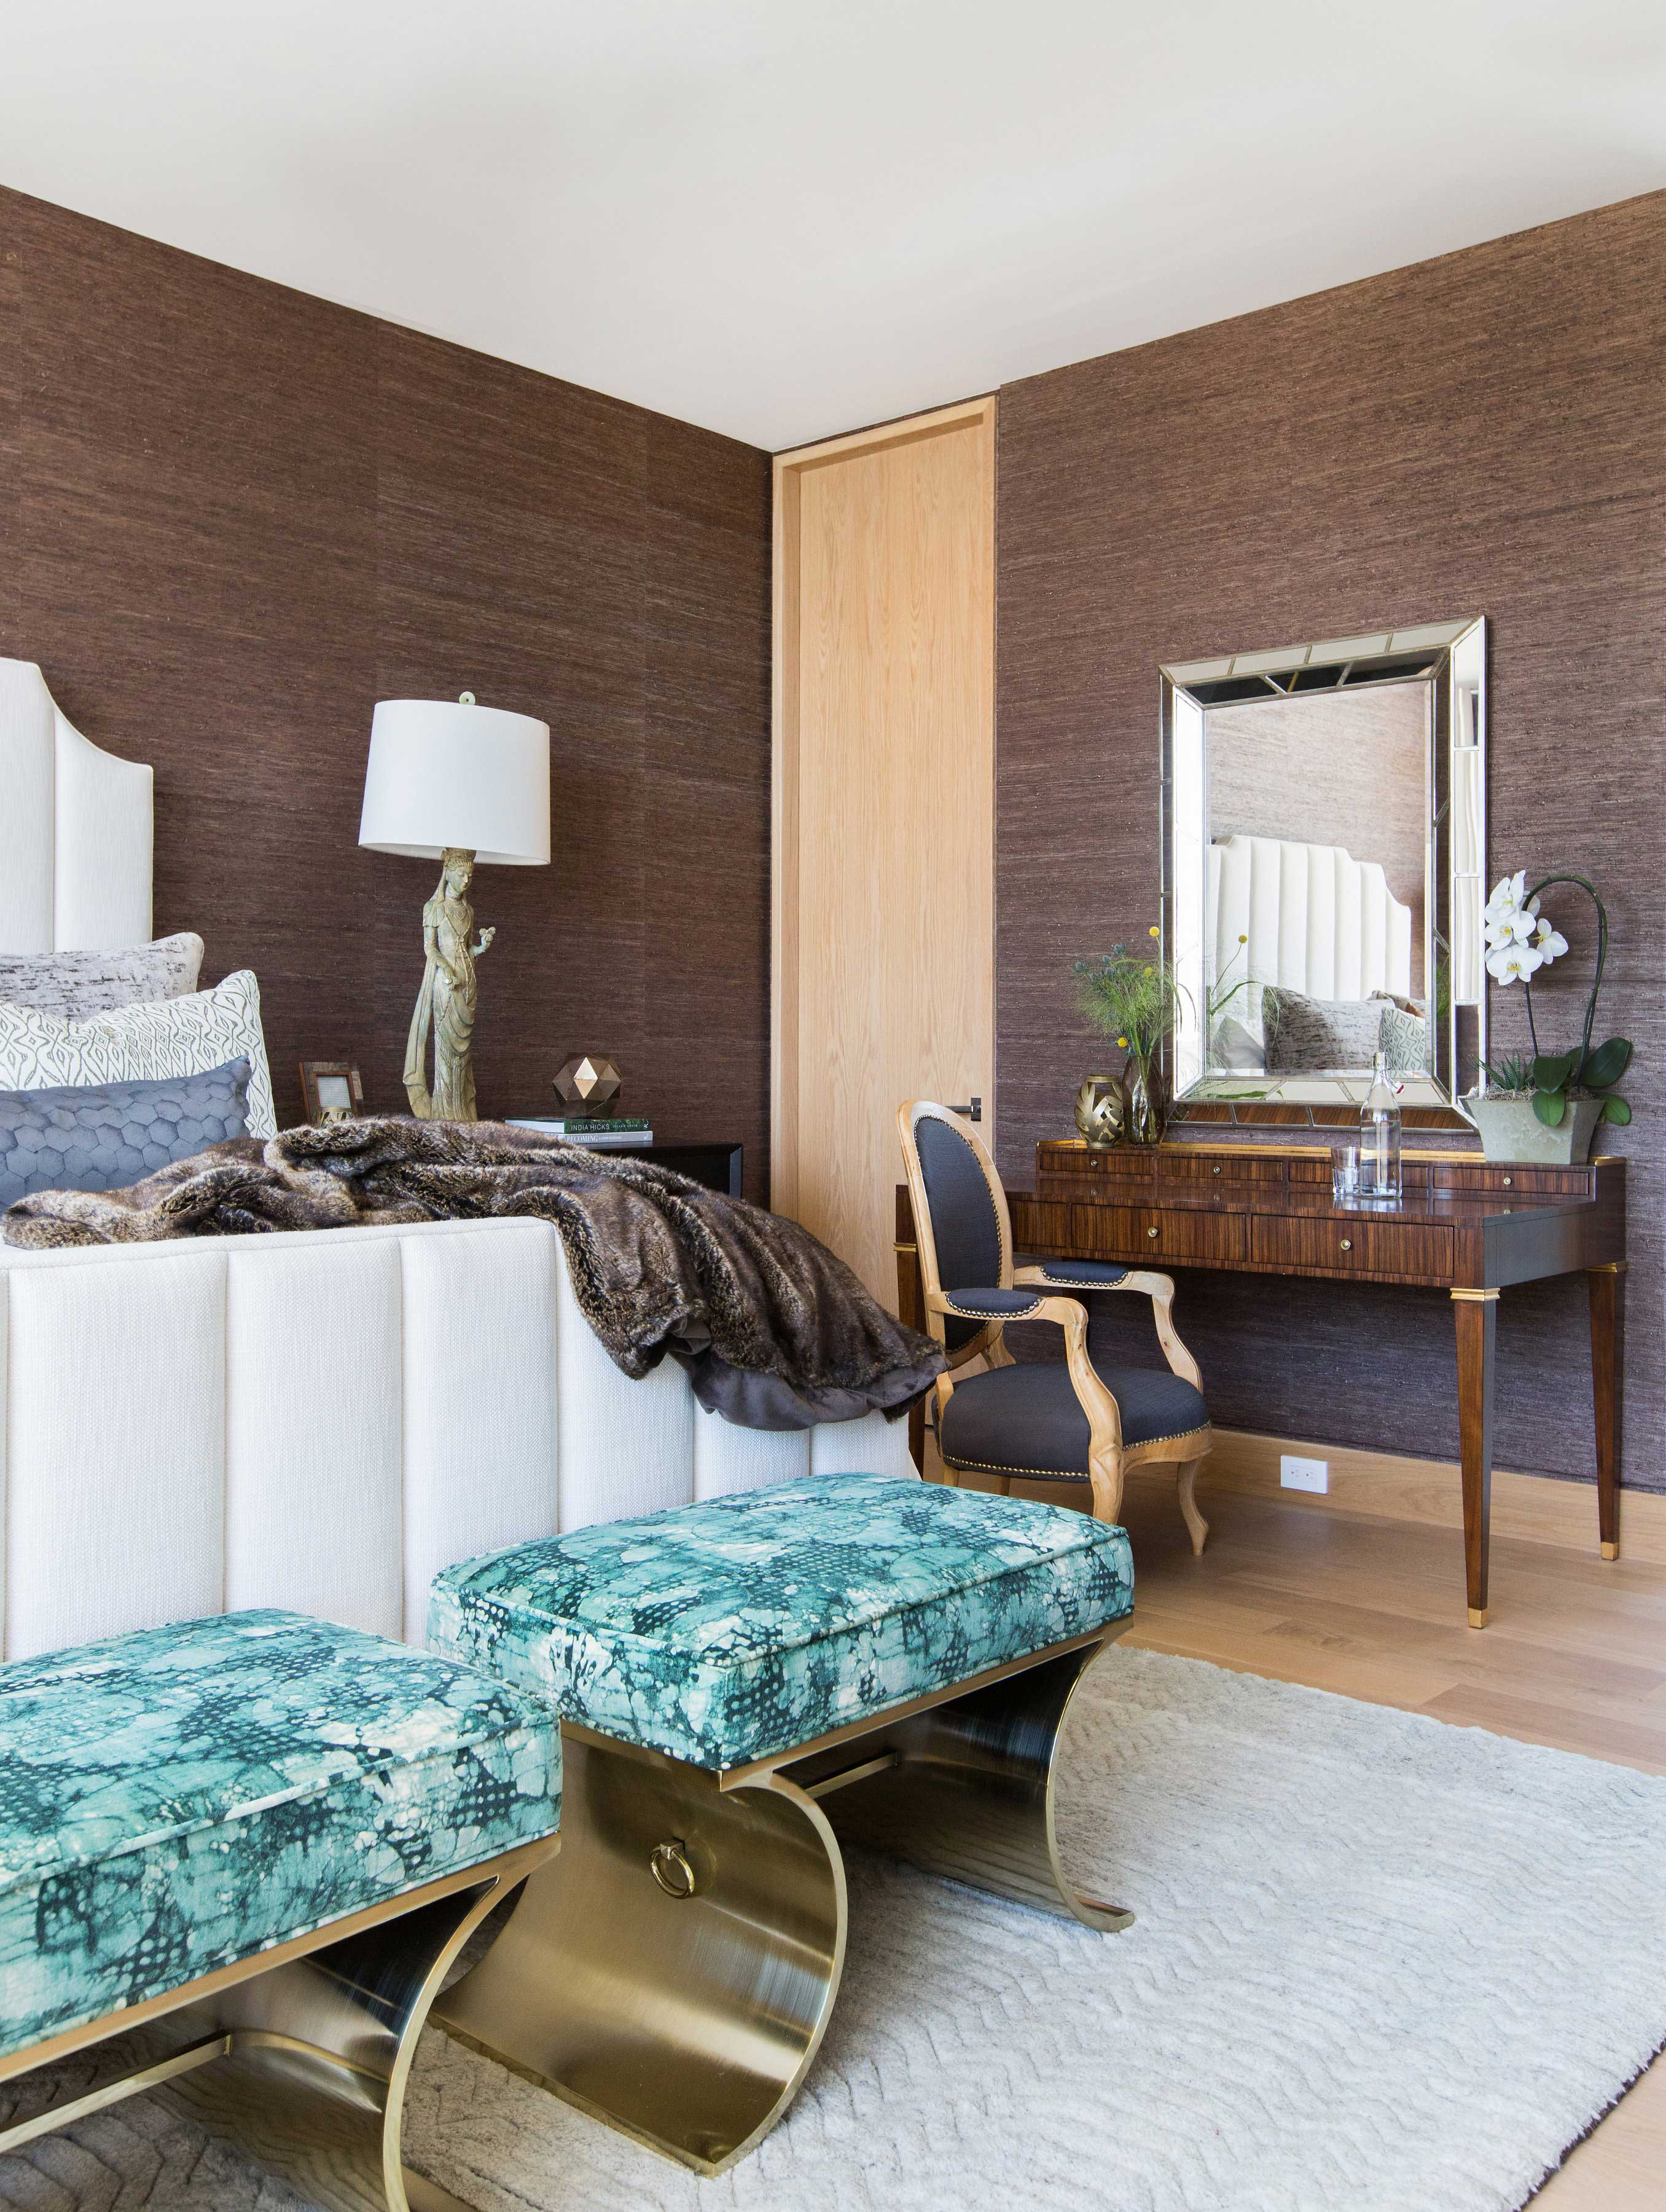 blackband_design_project_bel-air_guest_bedroom_9